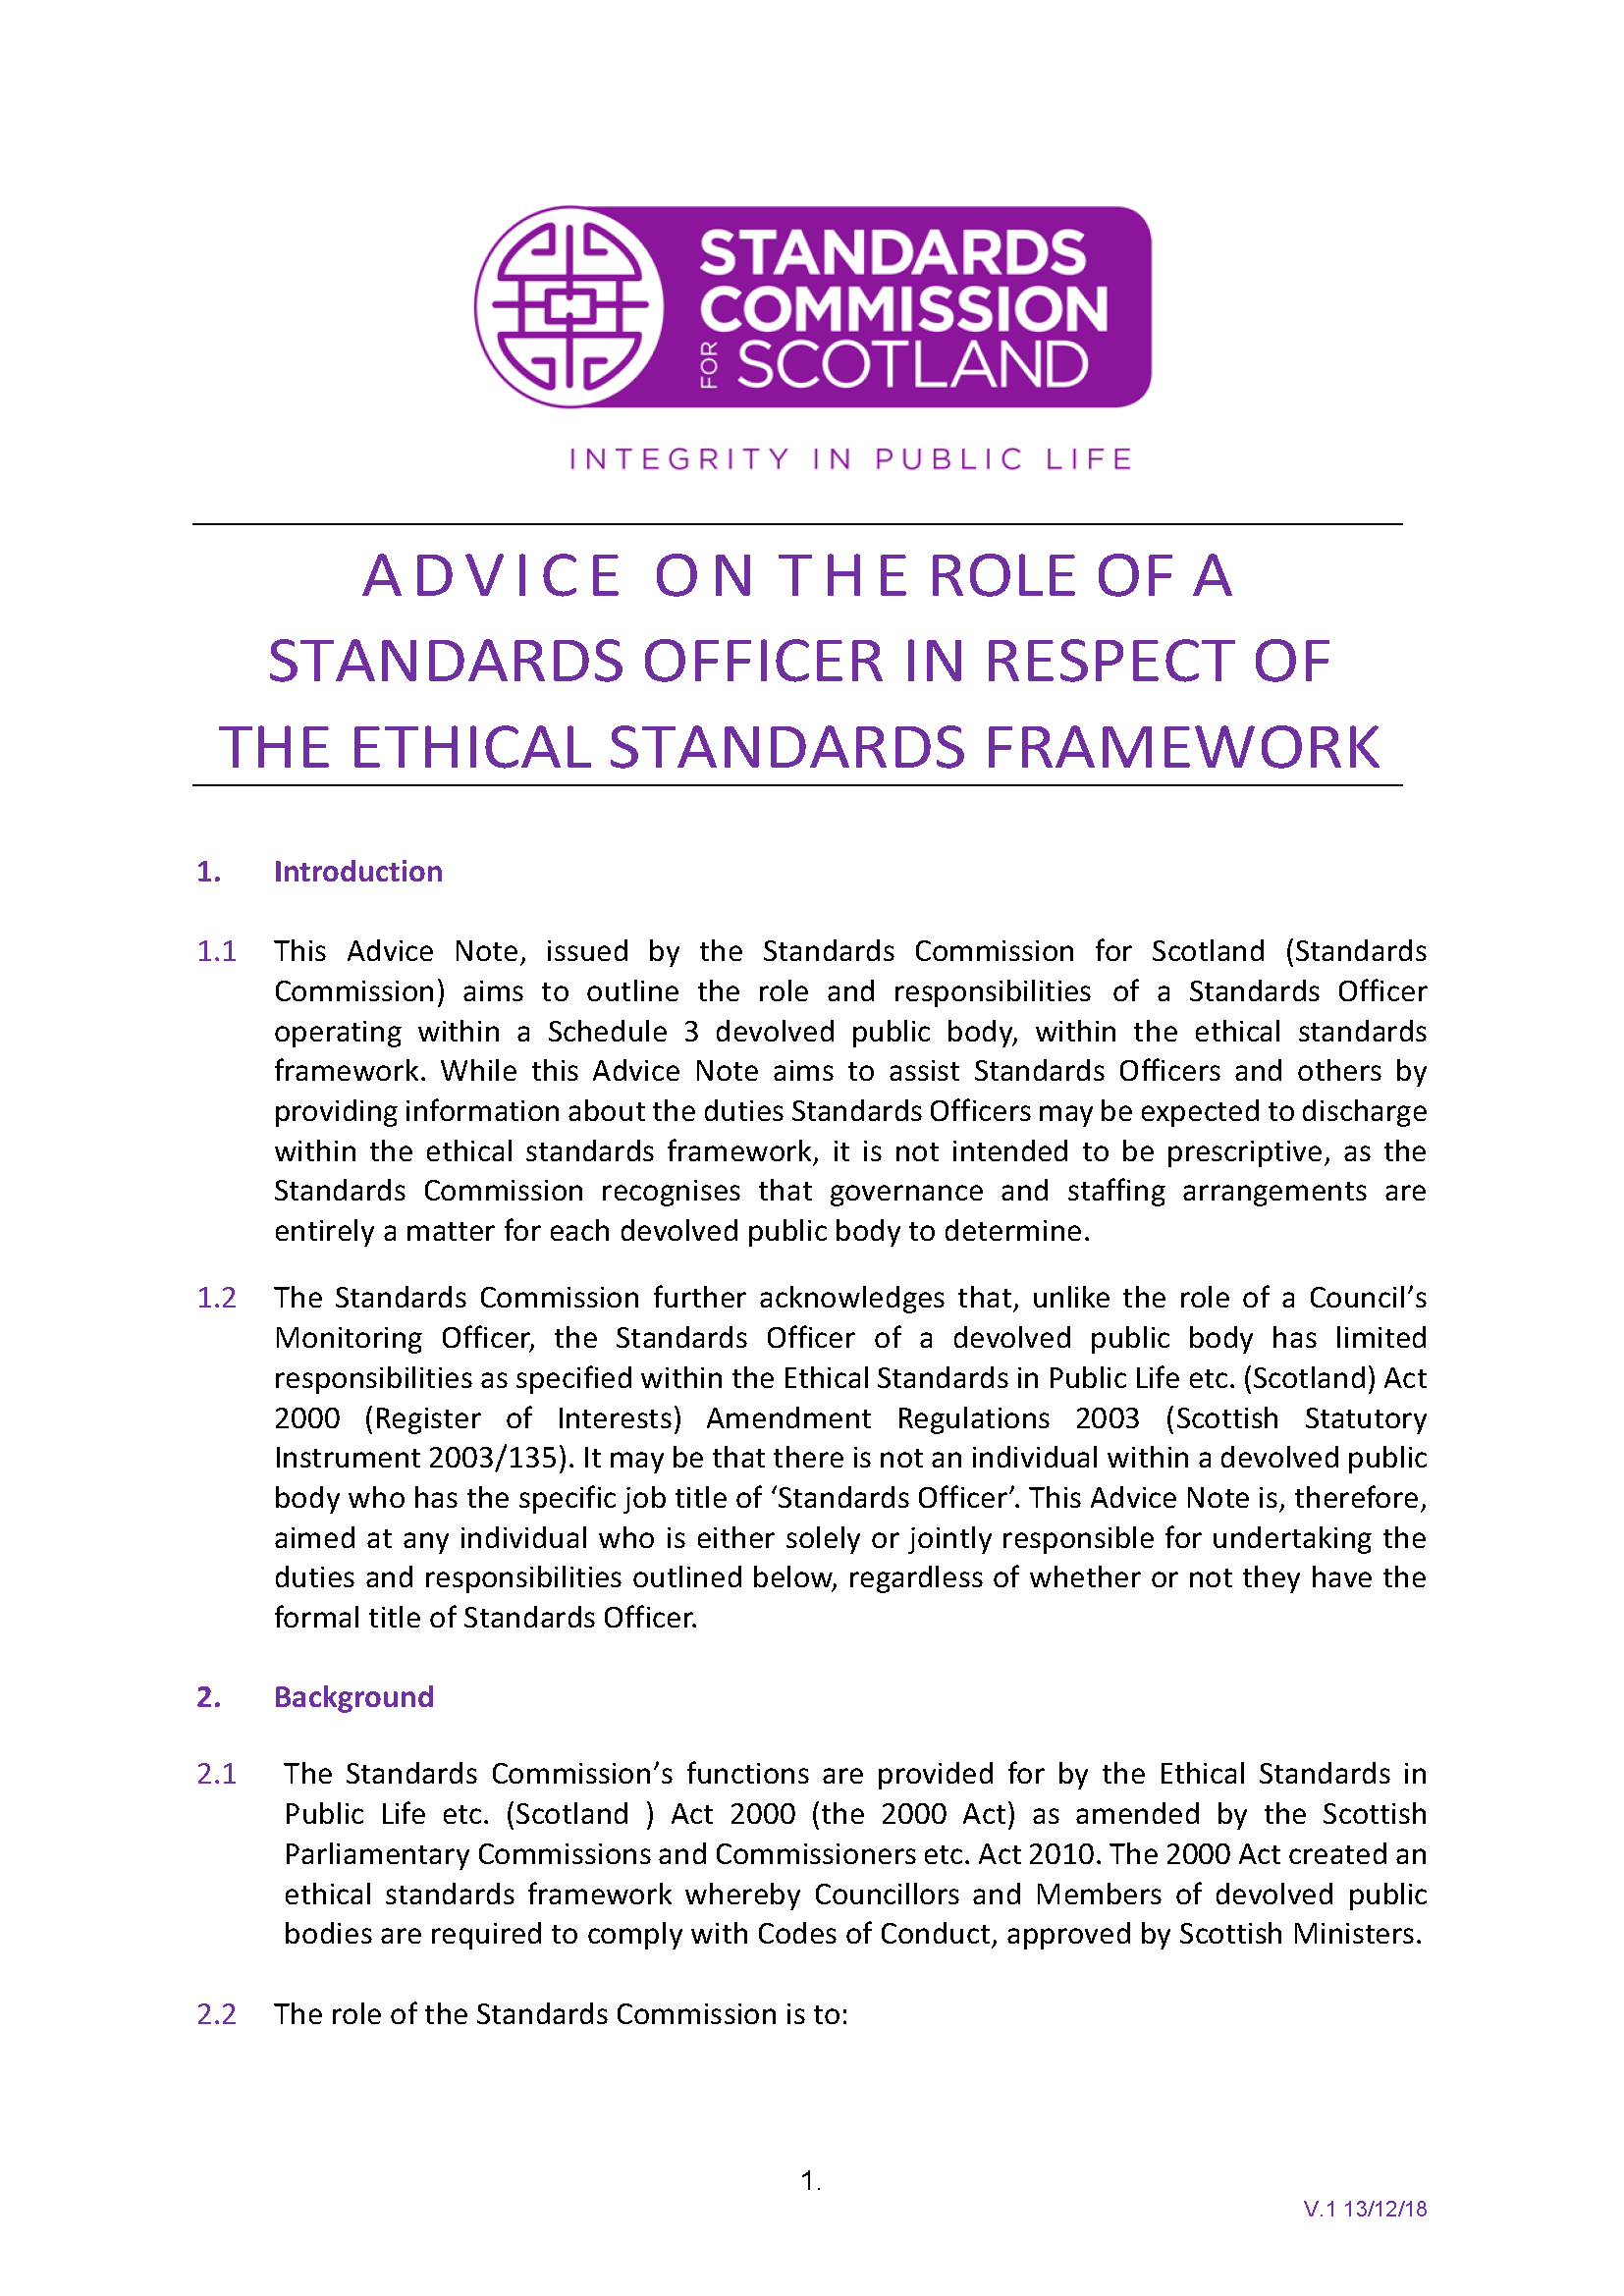 Advice on the Role of Standards Officer